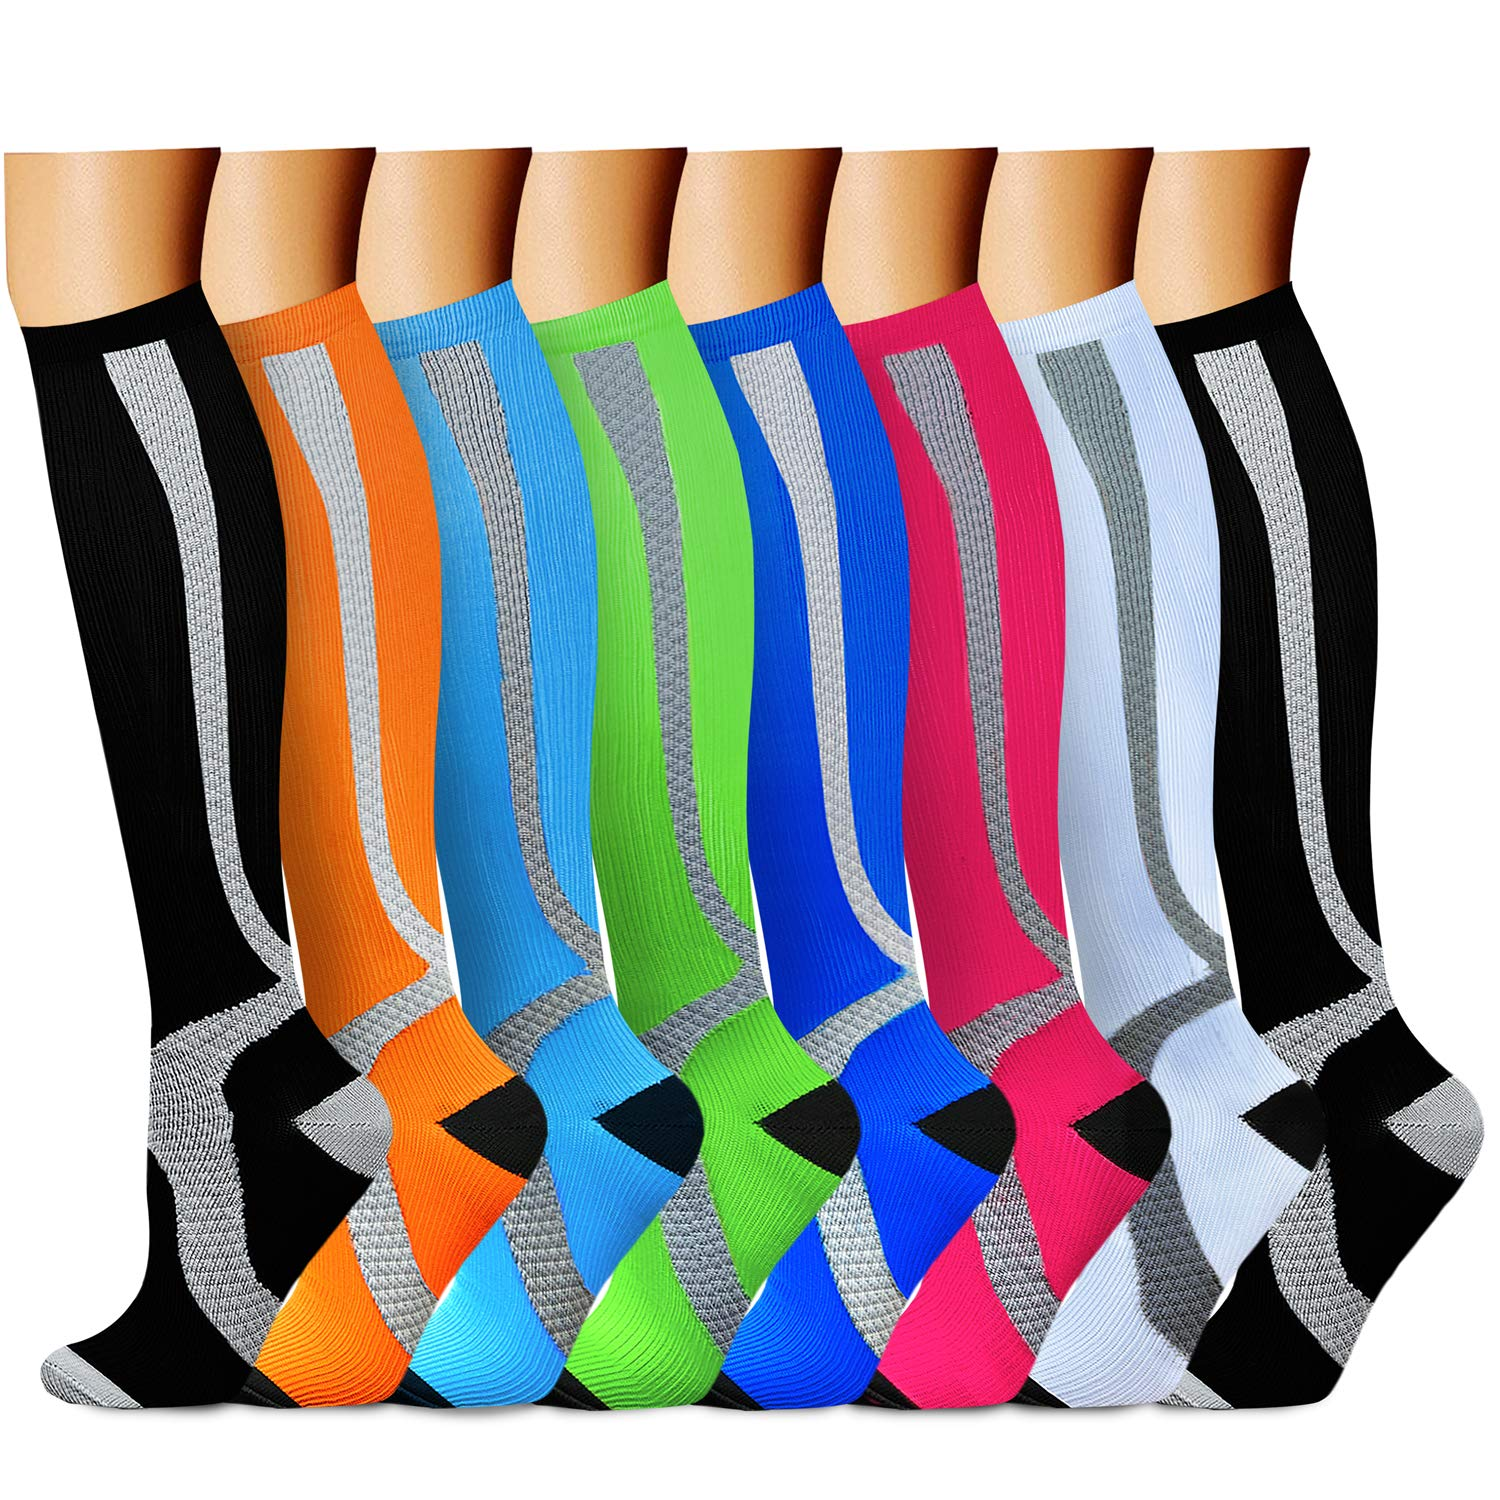 CHARMKING Compression Socks 15-20 mmHg is BEST Graduated Athletic & Medical for Men & Women Running, Travel, Nurses, Pregnant - Boost Performance, Blood Circulation & Recovery(Small/Medium,Assorted 8)